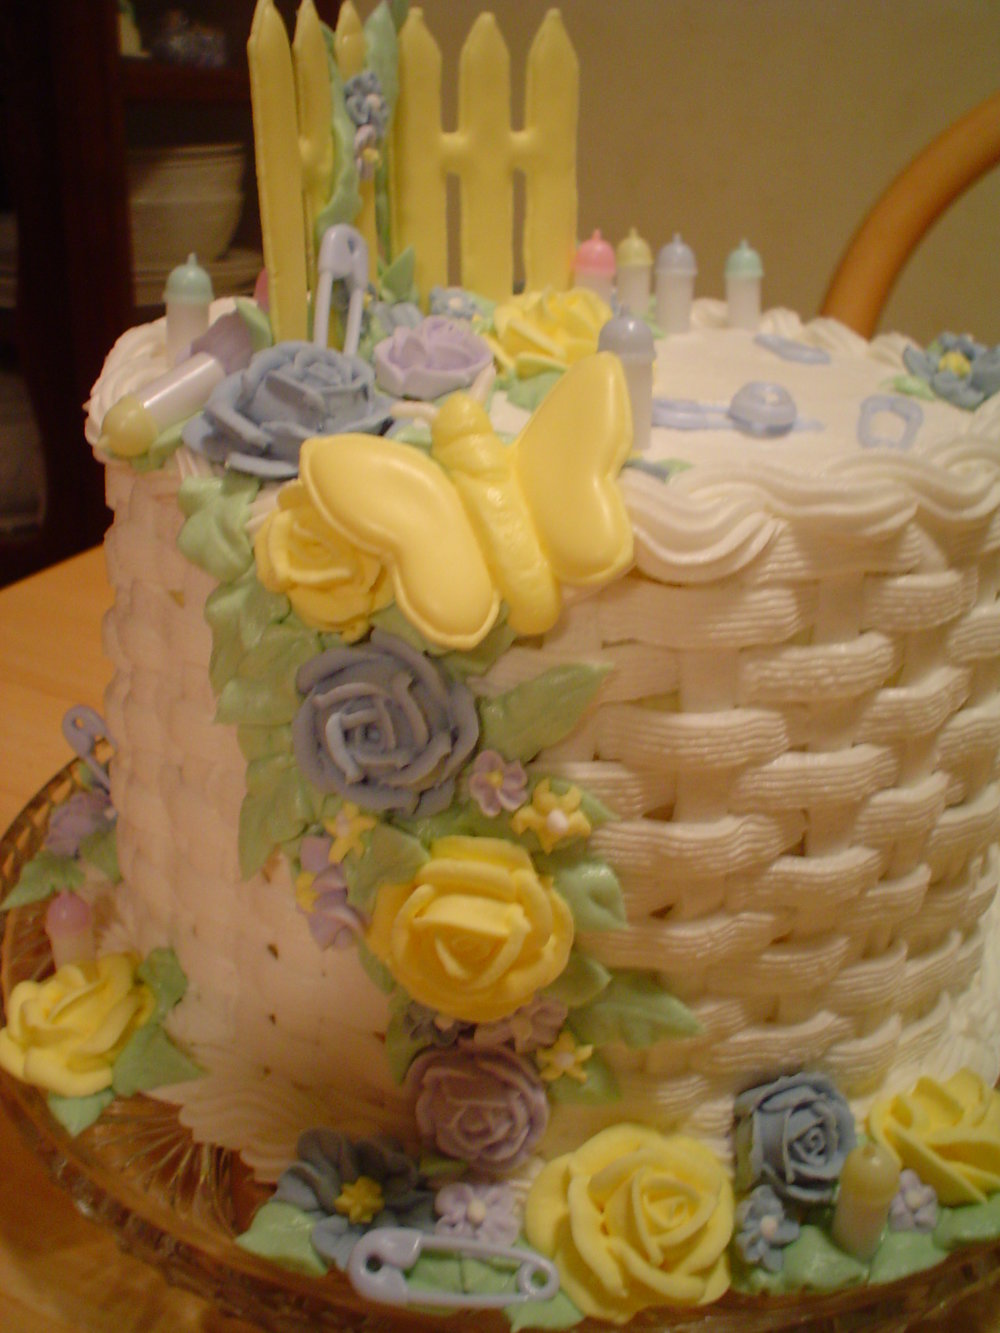 Shower_cake_004 - Copy.JPG